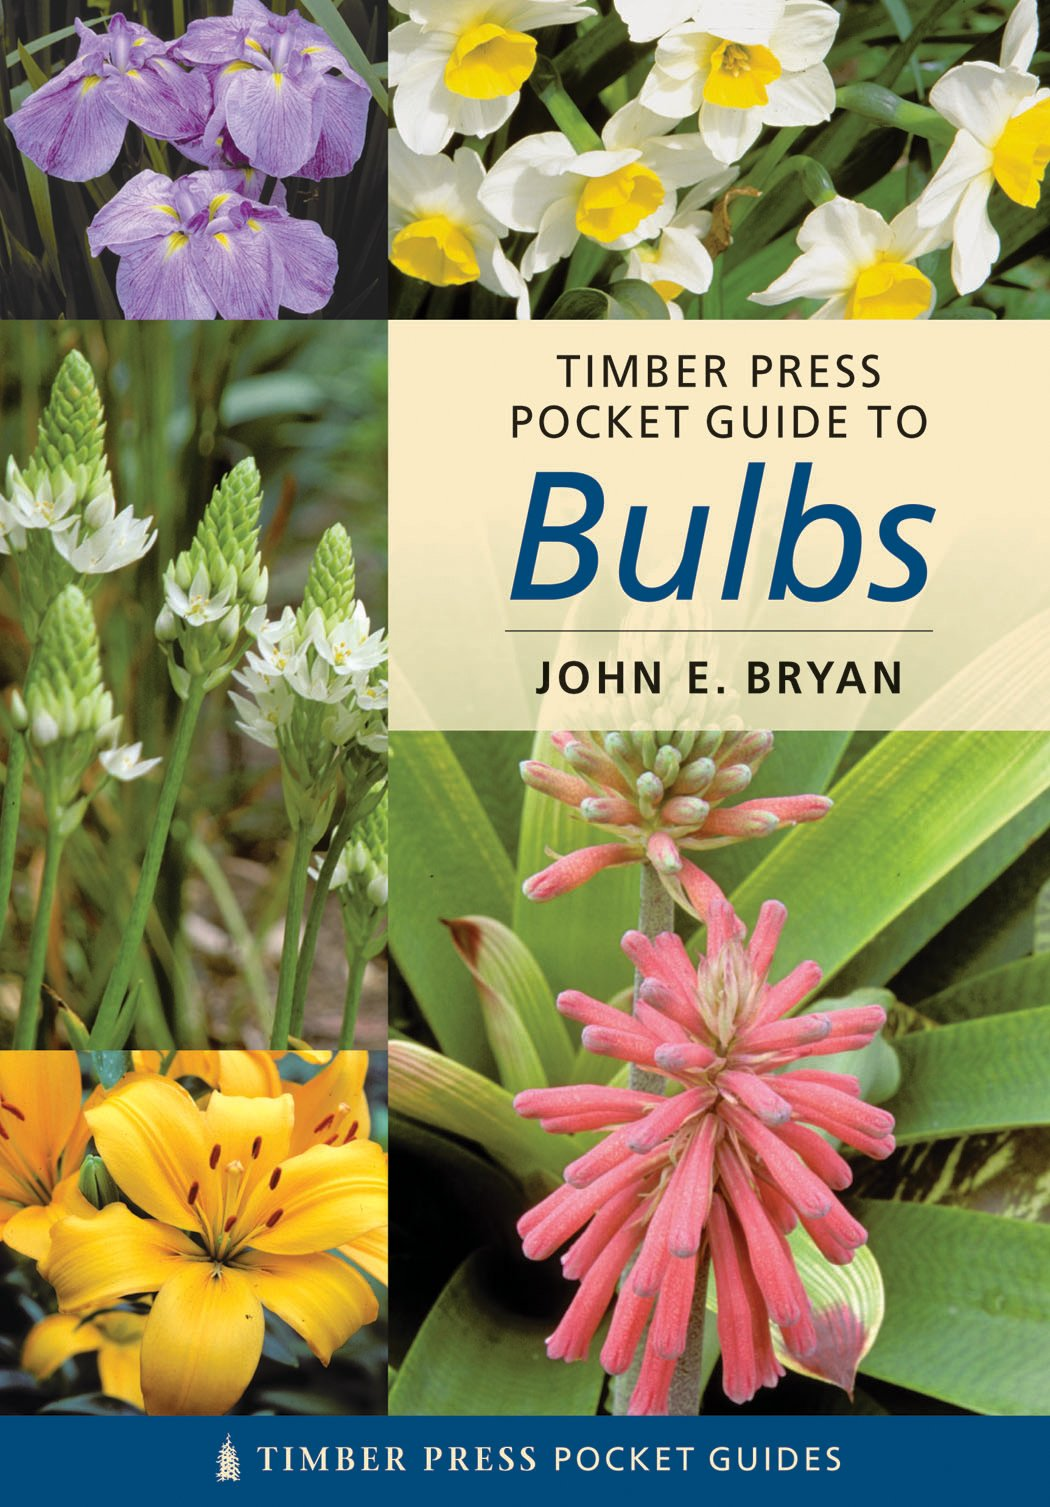 Download Pocket Guide to Bulbs (TIMBER PRESS POCKET GUIDES) PDF